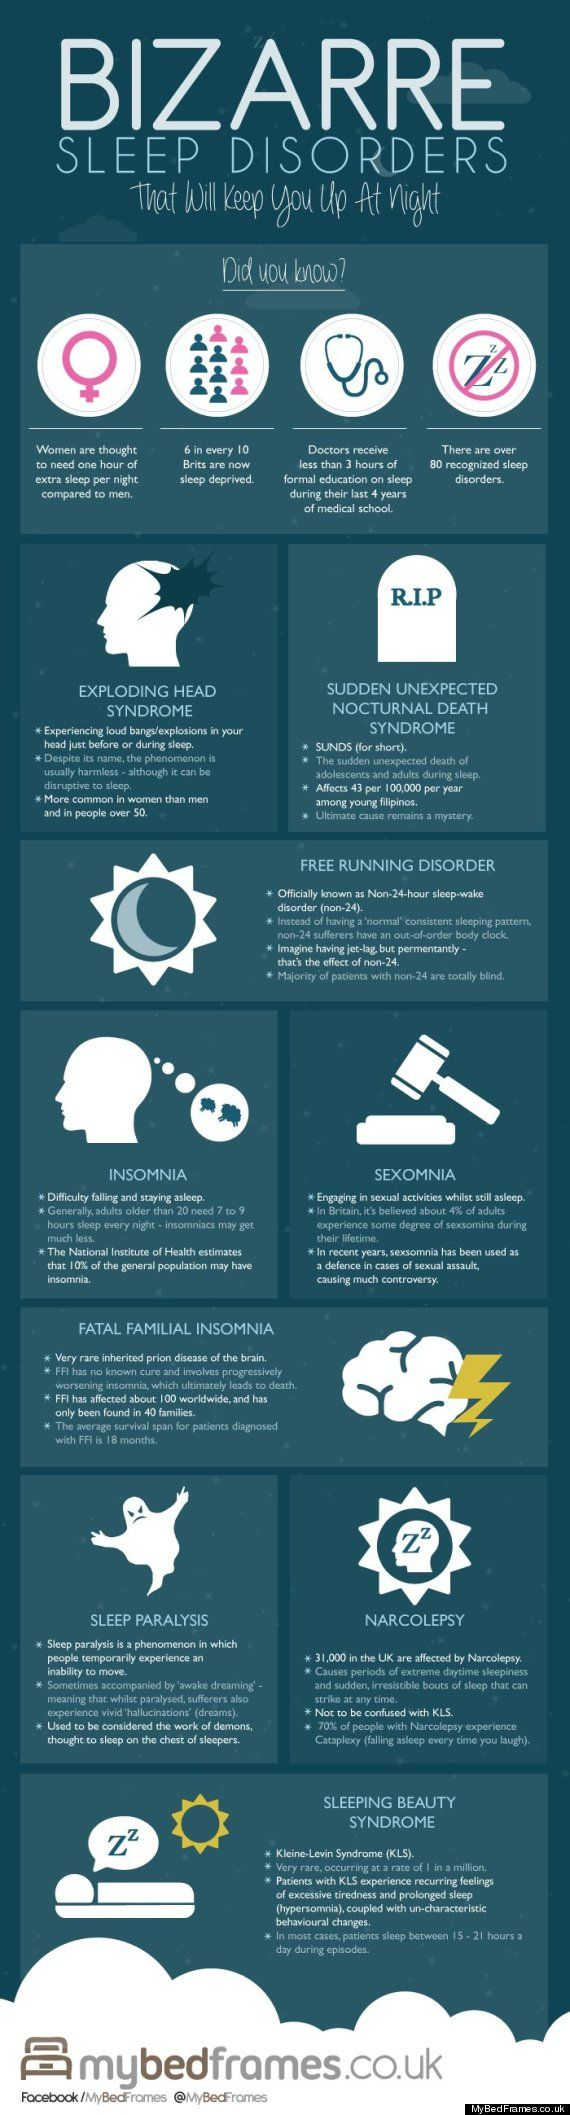 This Pin points out different sleeping disorders that some people may have. This is important to look at in order to be able to help others sleep.